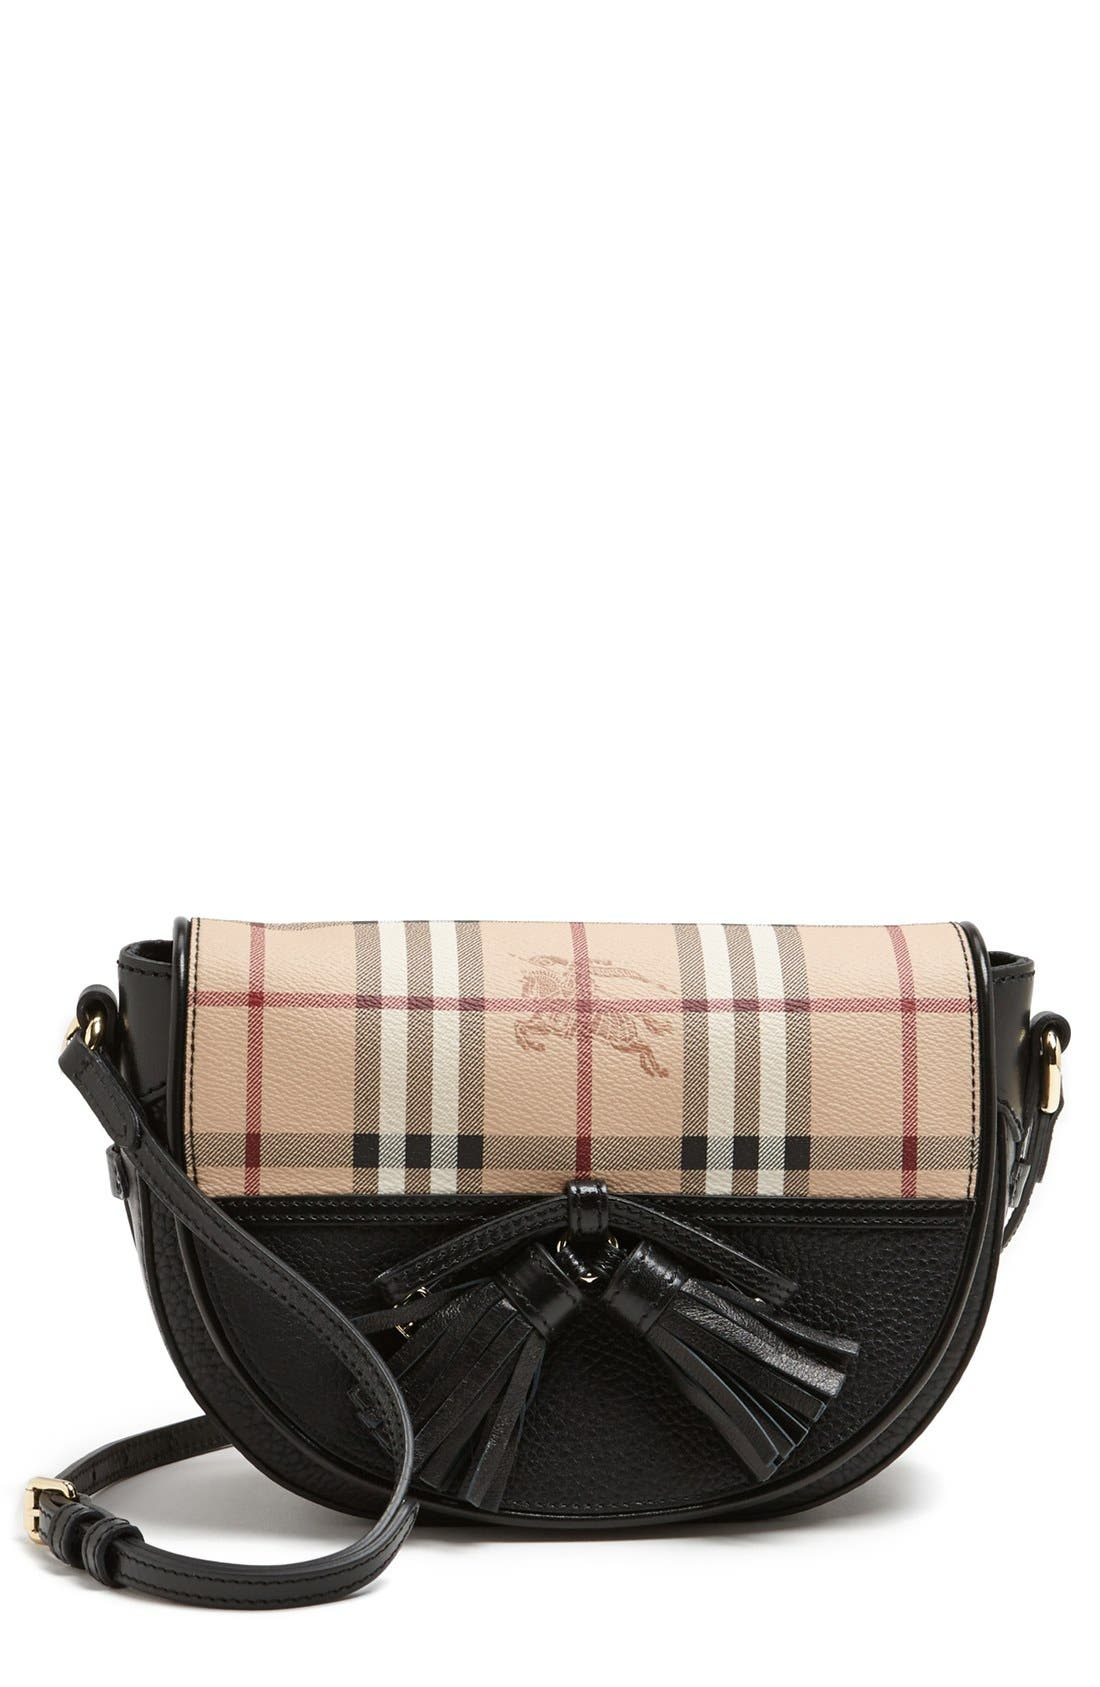 Main Image - Burberry 'Small Maydown' Leather Crossbody Bag